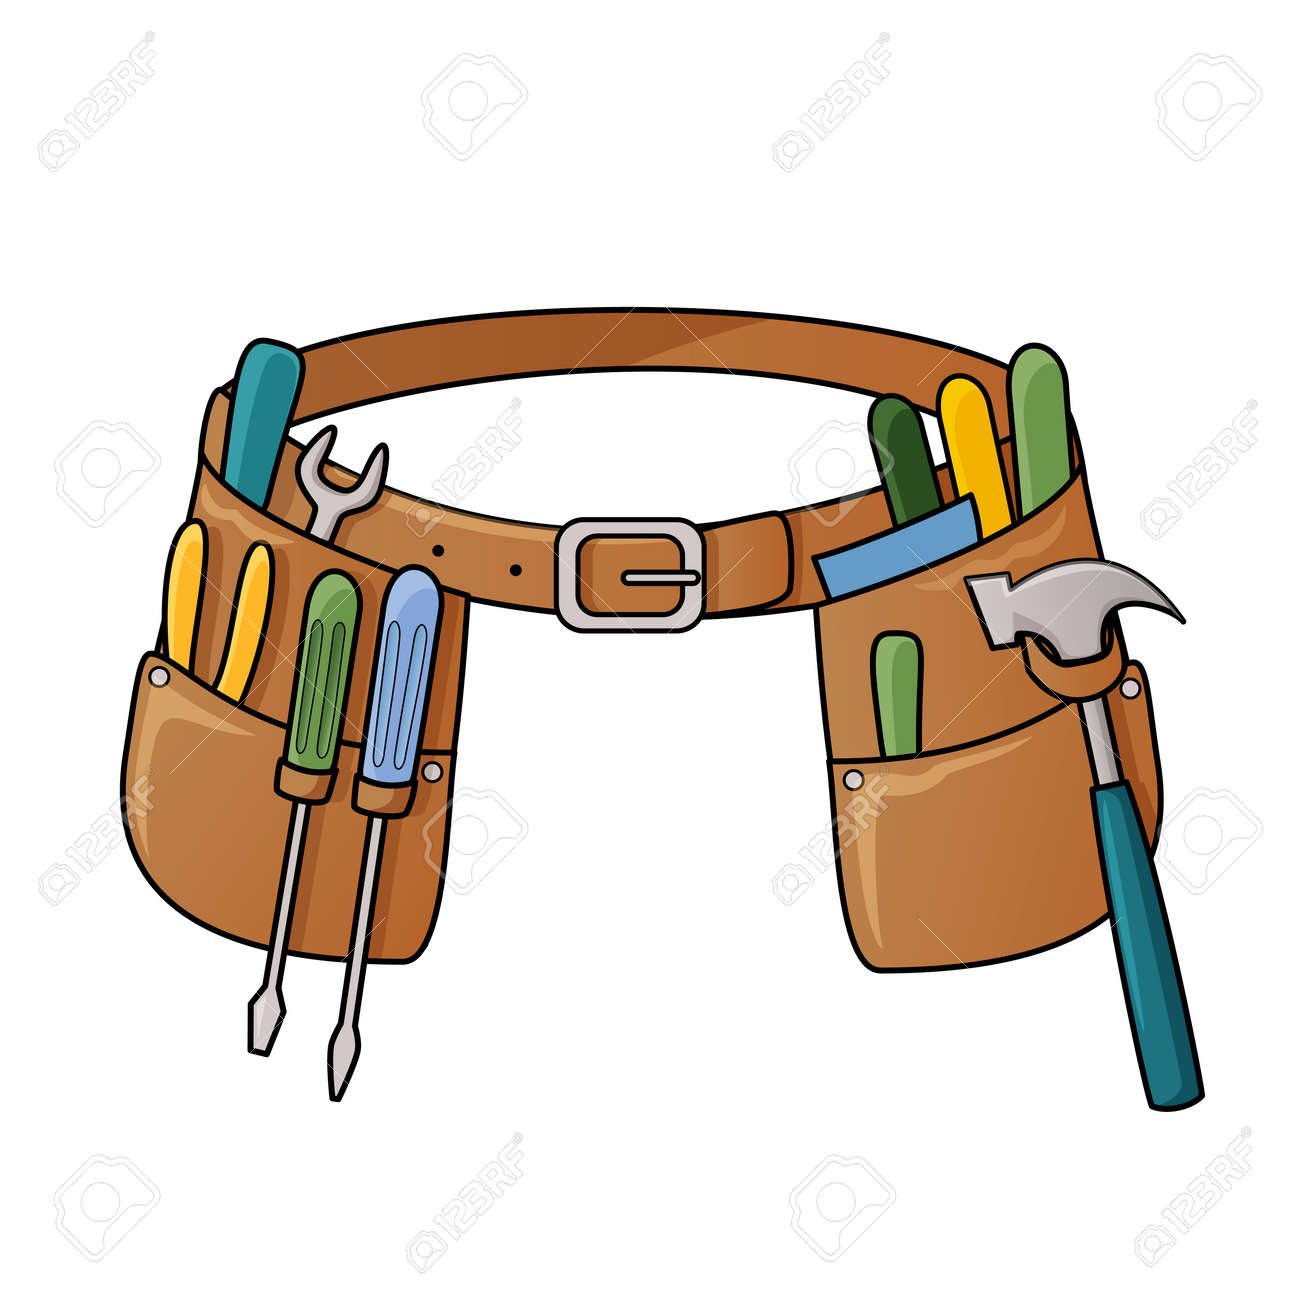 Vector illustration of tool belt with different tools for construction - 23020013